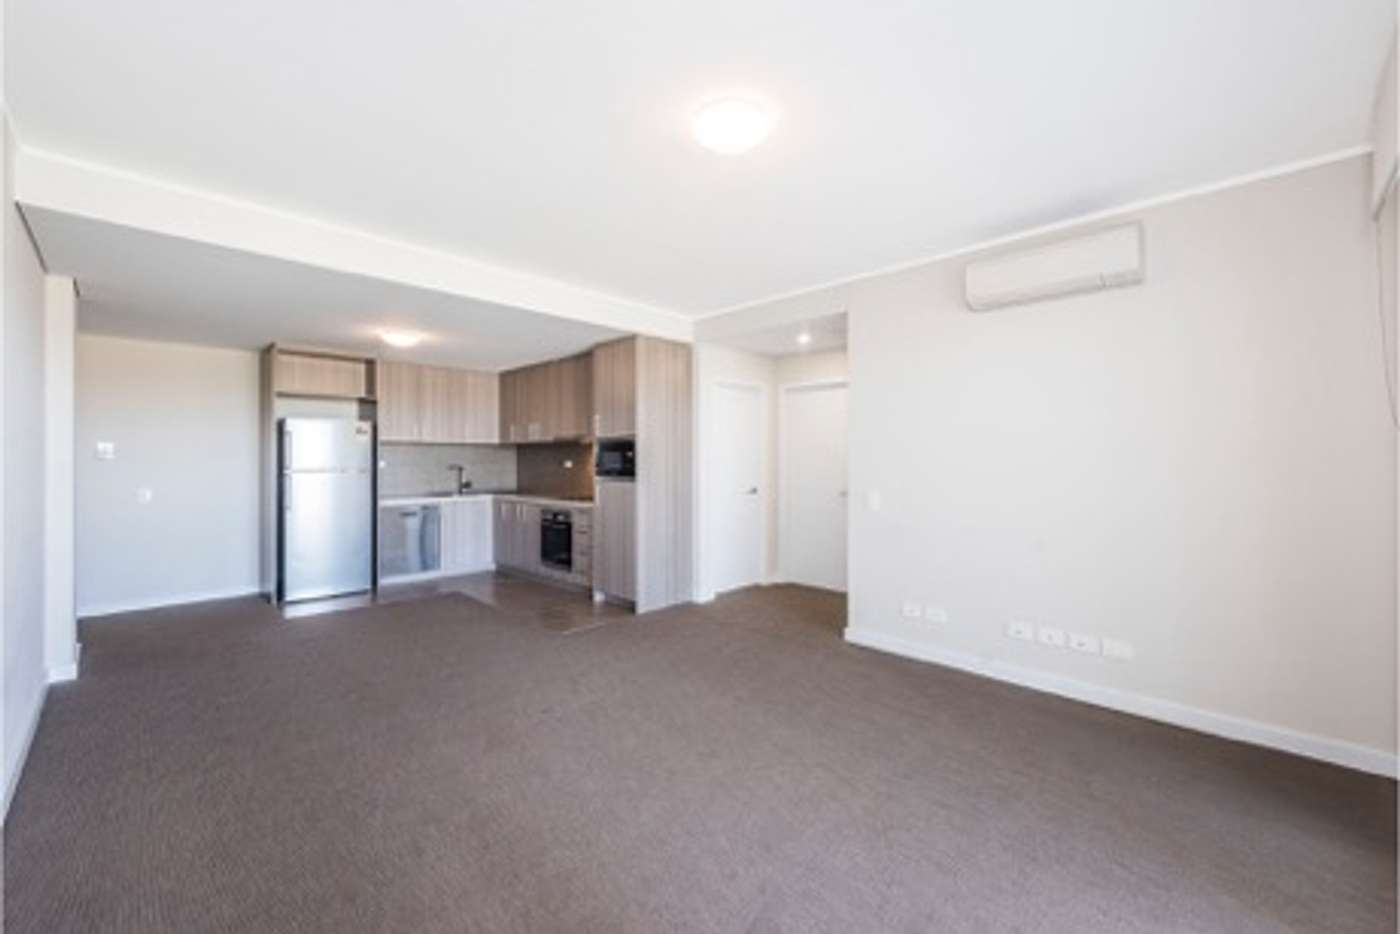 Seventh view of Homely apartment listing, 310/18 Cecil Avenue, Cannington WA 6107